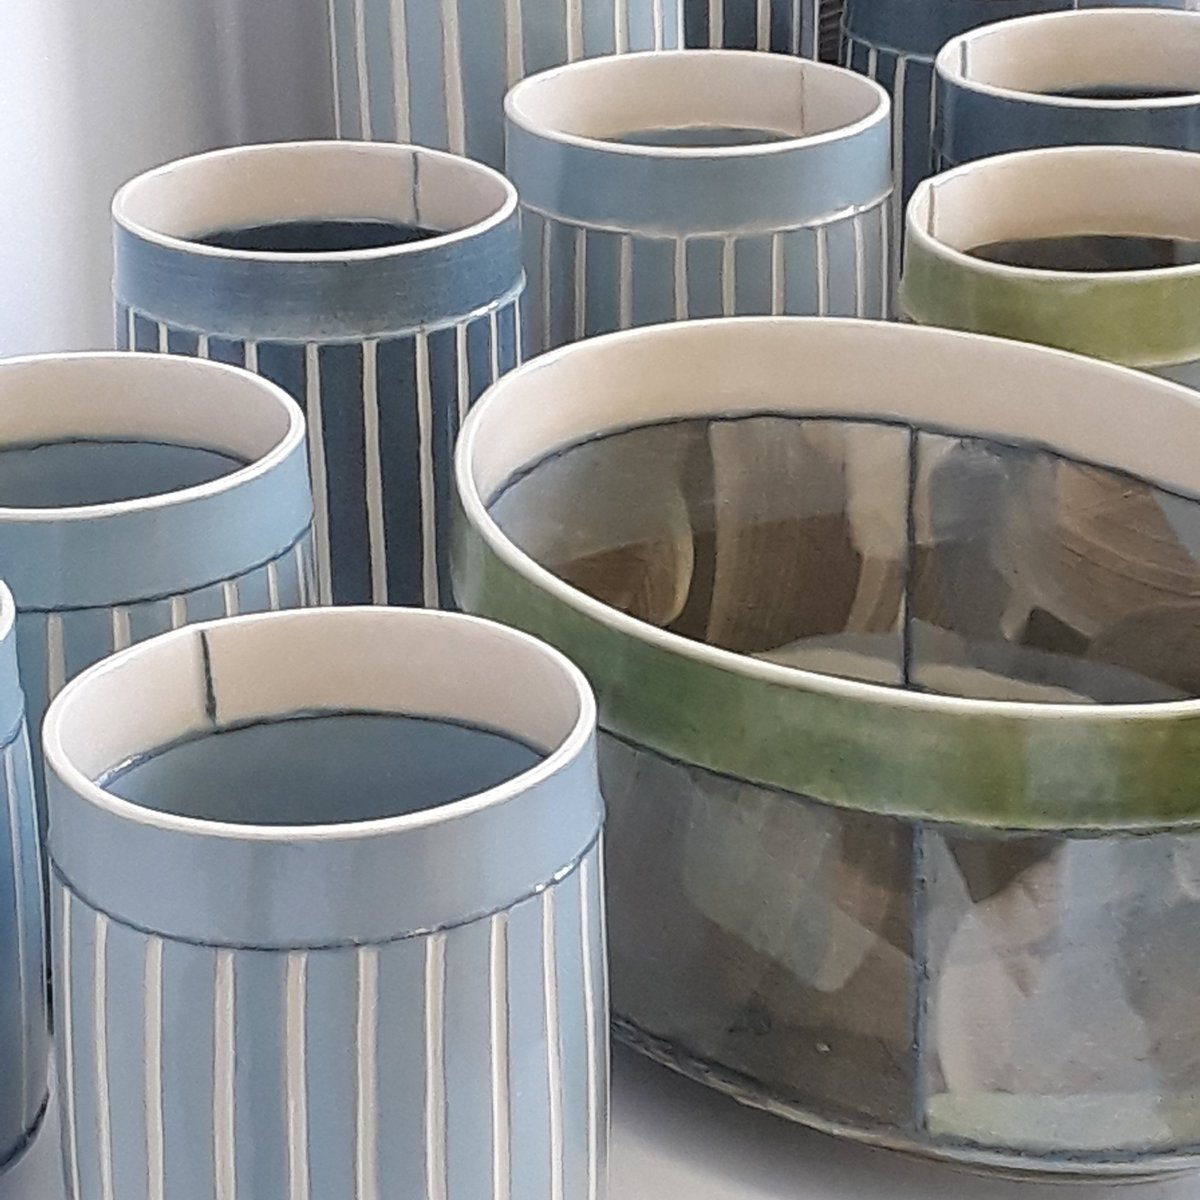 NEW!  A few vessels from one of the latest firings.  #contemporaryceramics #forthehome #chooselovely pic.twitter.com/Cccmz4bETK